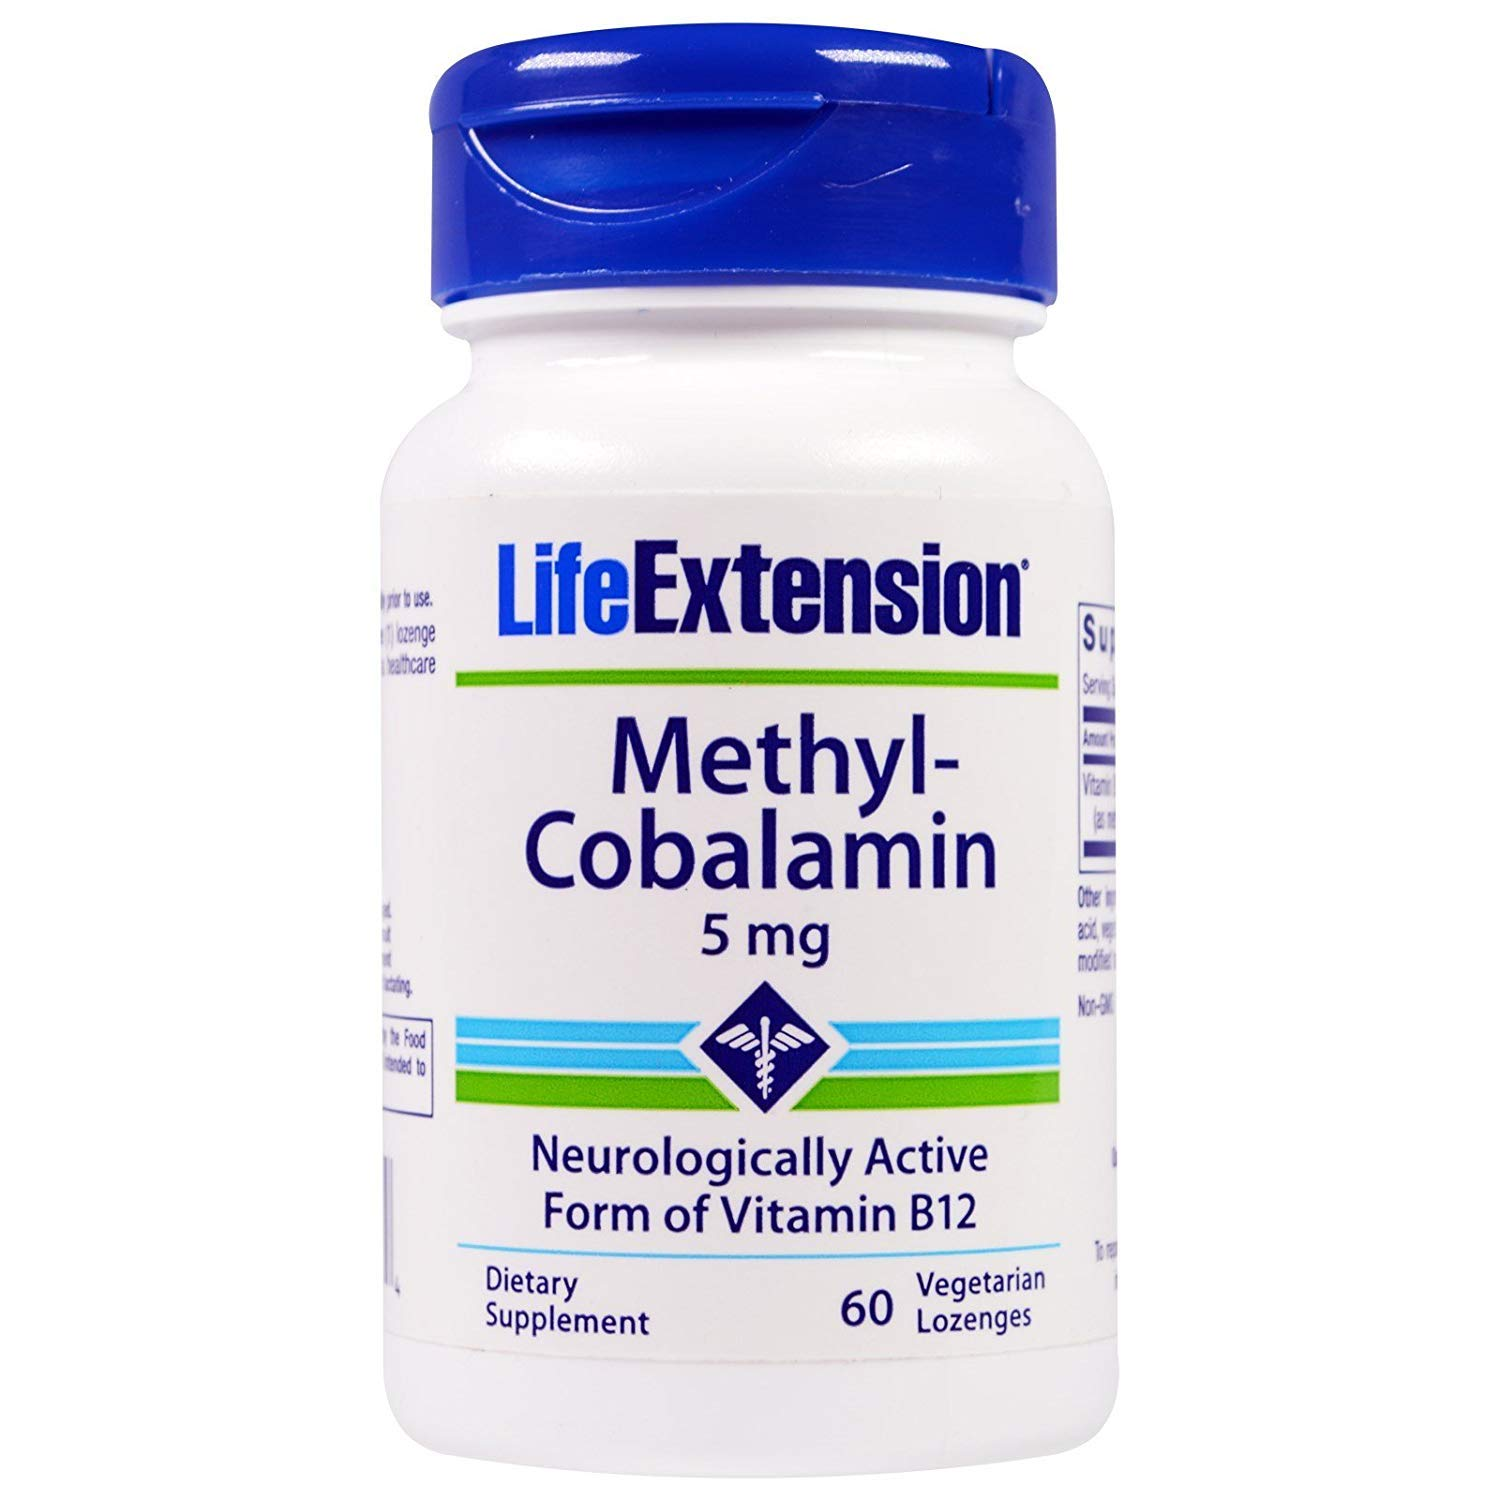 Life Extension, Methyl-Cobalamin, 5 mg, 60 Vegetarian Lozenges - 2pc